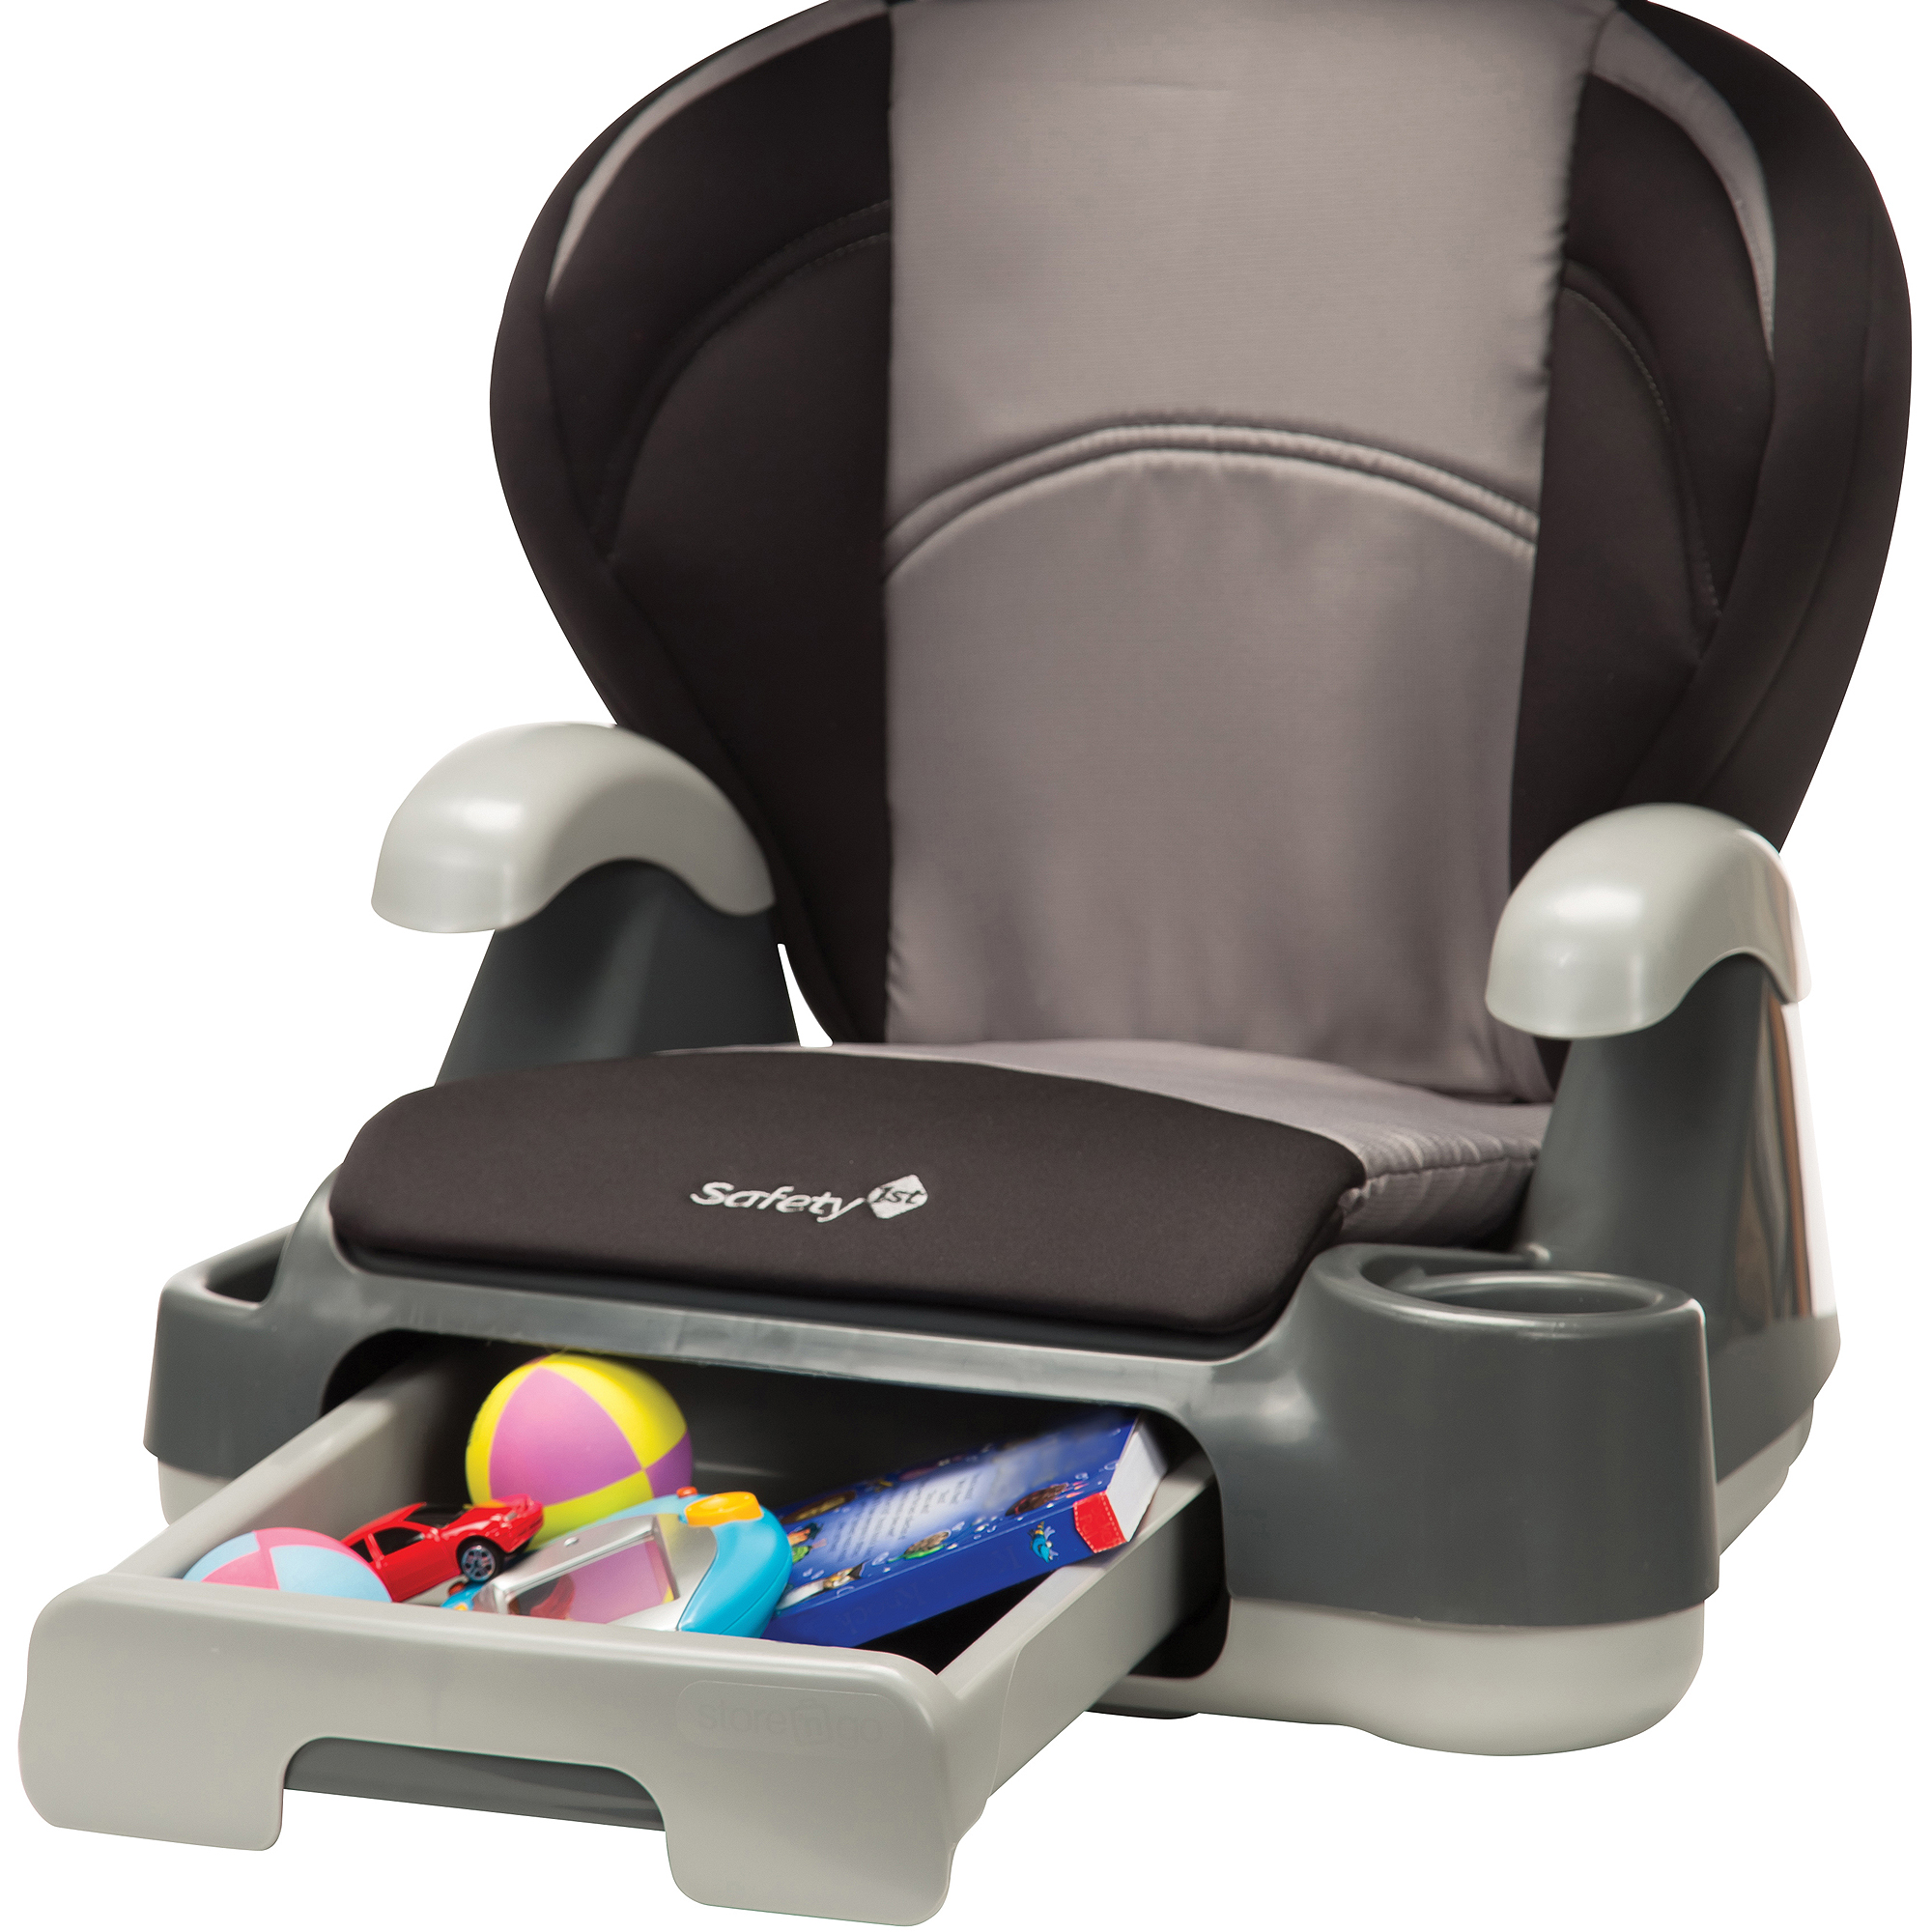 Safety 1st Store 'N Go Belt-Positioning Booster Car Seat, Hayes